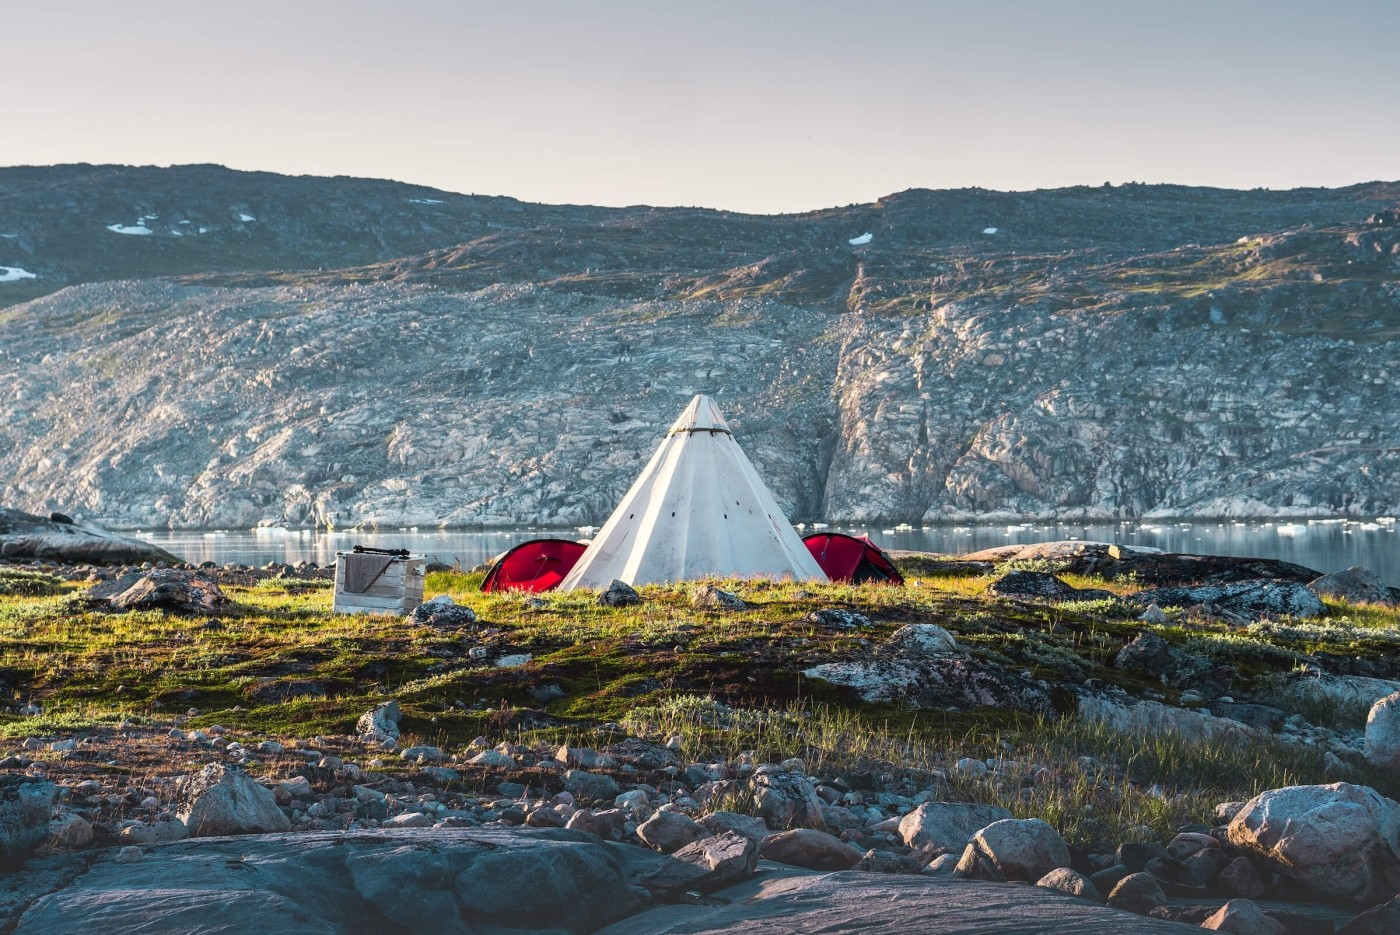 Camp setup near a mountain at the waterfront.